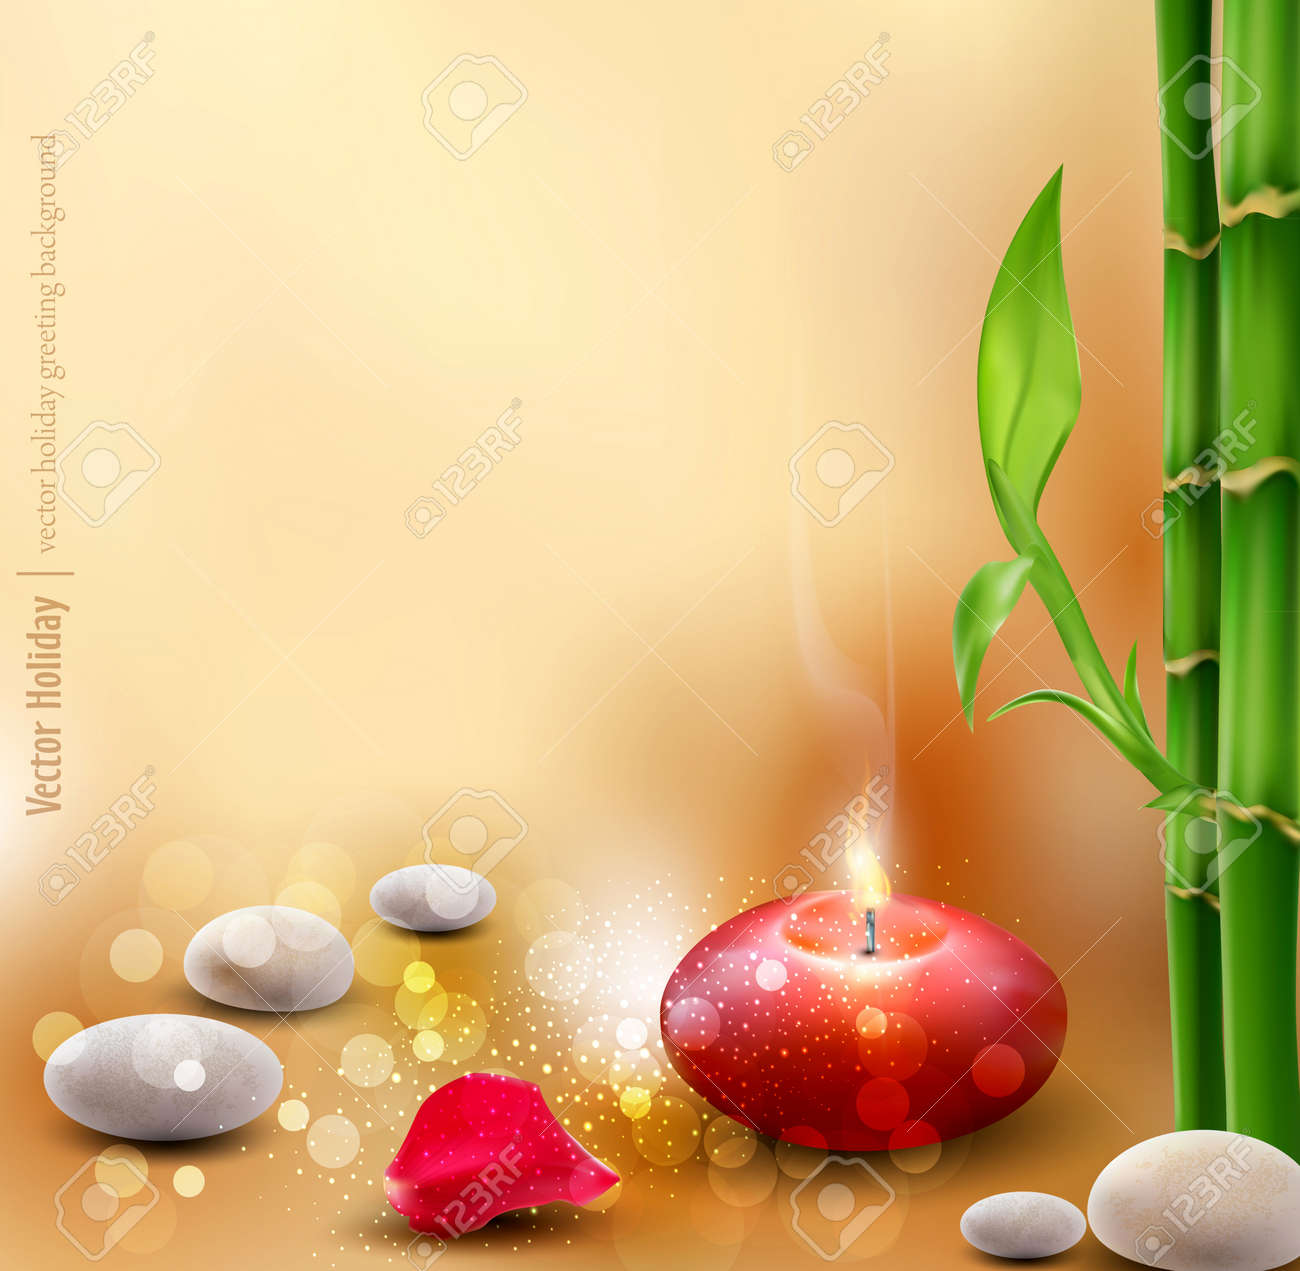 romantic background with bamboo and lit candles Stock Vector - 12866888